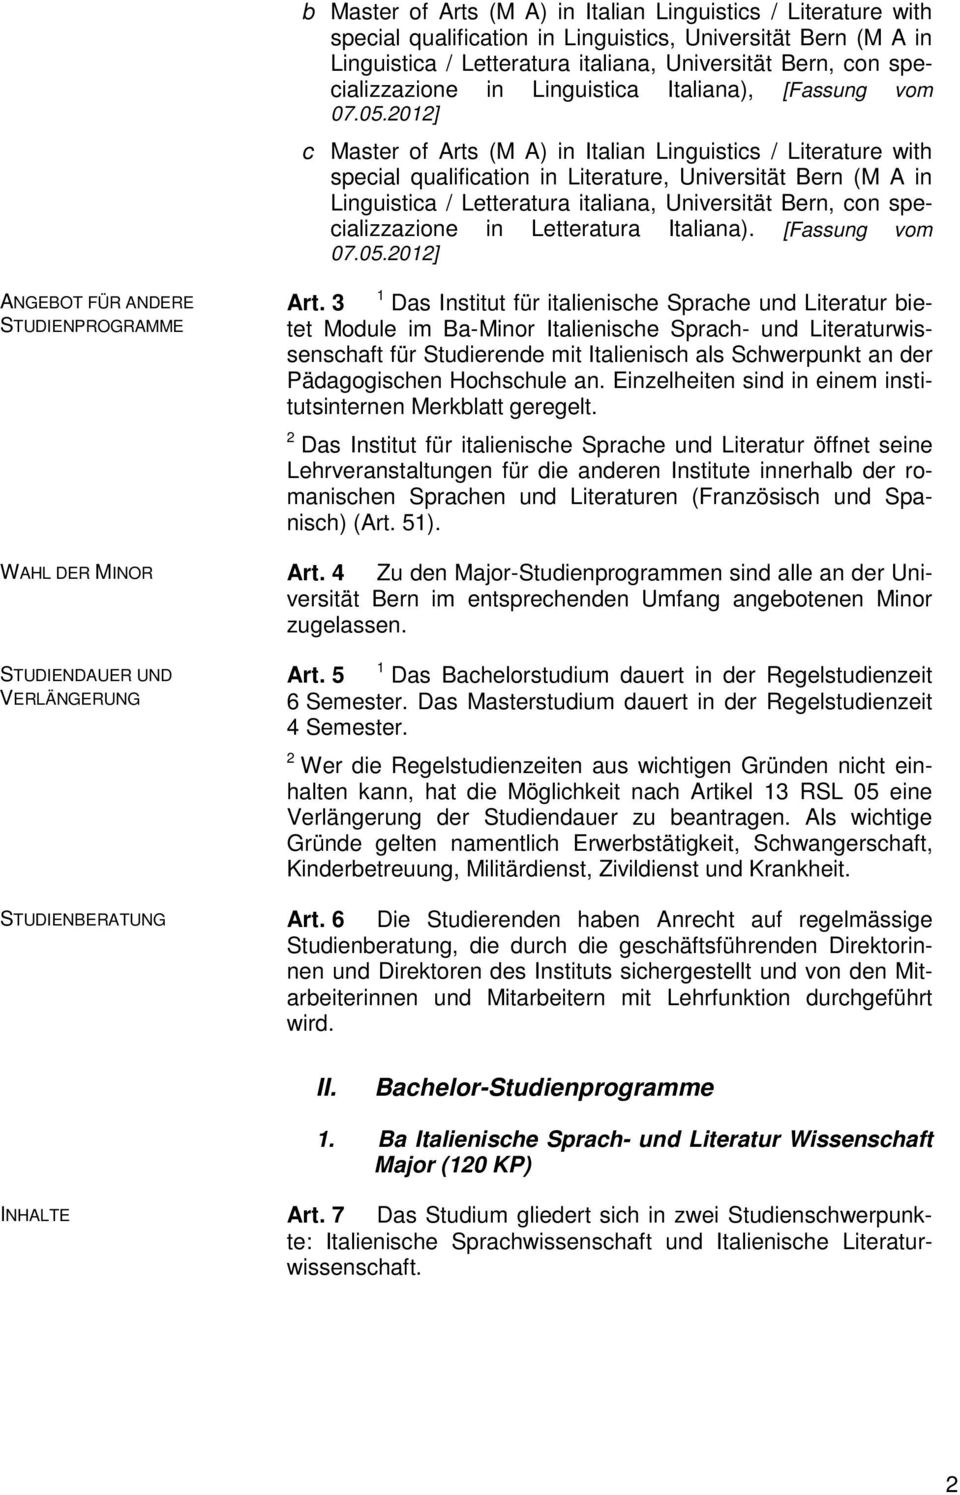 2012] c Master of Arts (M A) in Italian Linguistics / Literature with special qualification in Literature, Universität Bern (M A in Linguistica / Letteratura italiana, Universität Bern, con